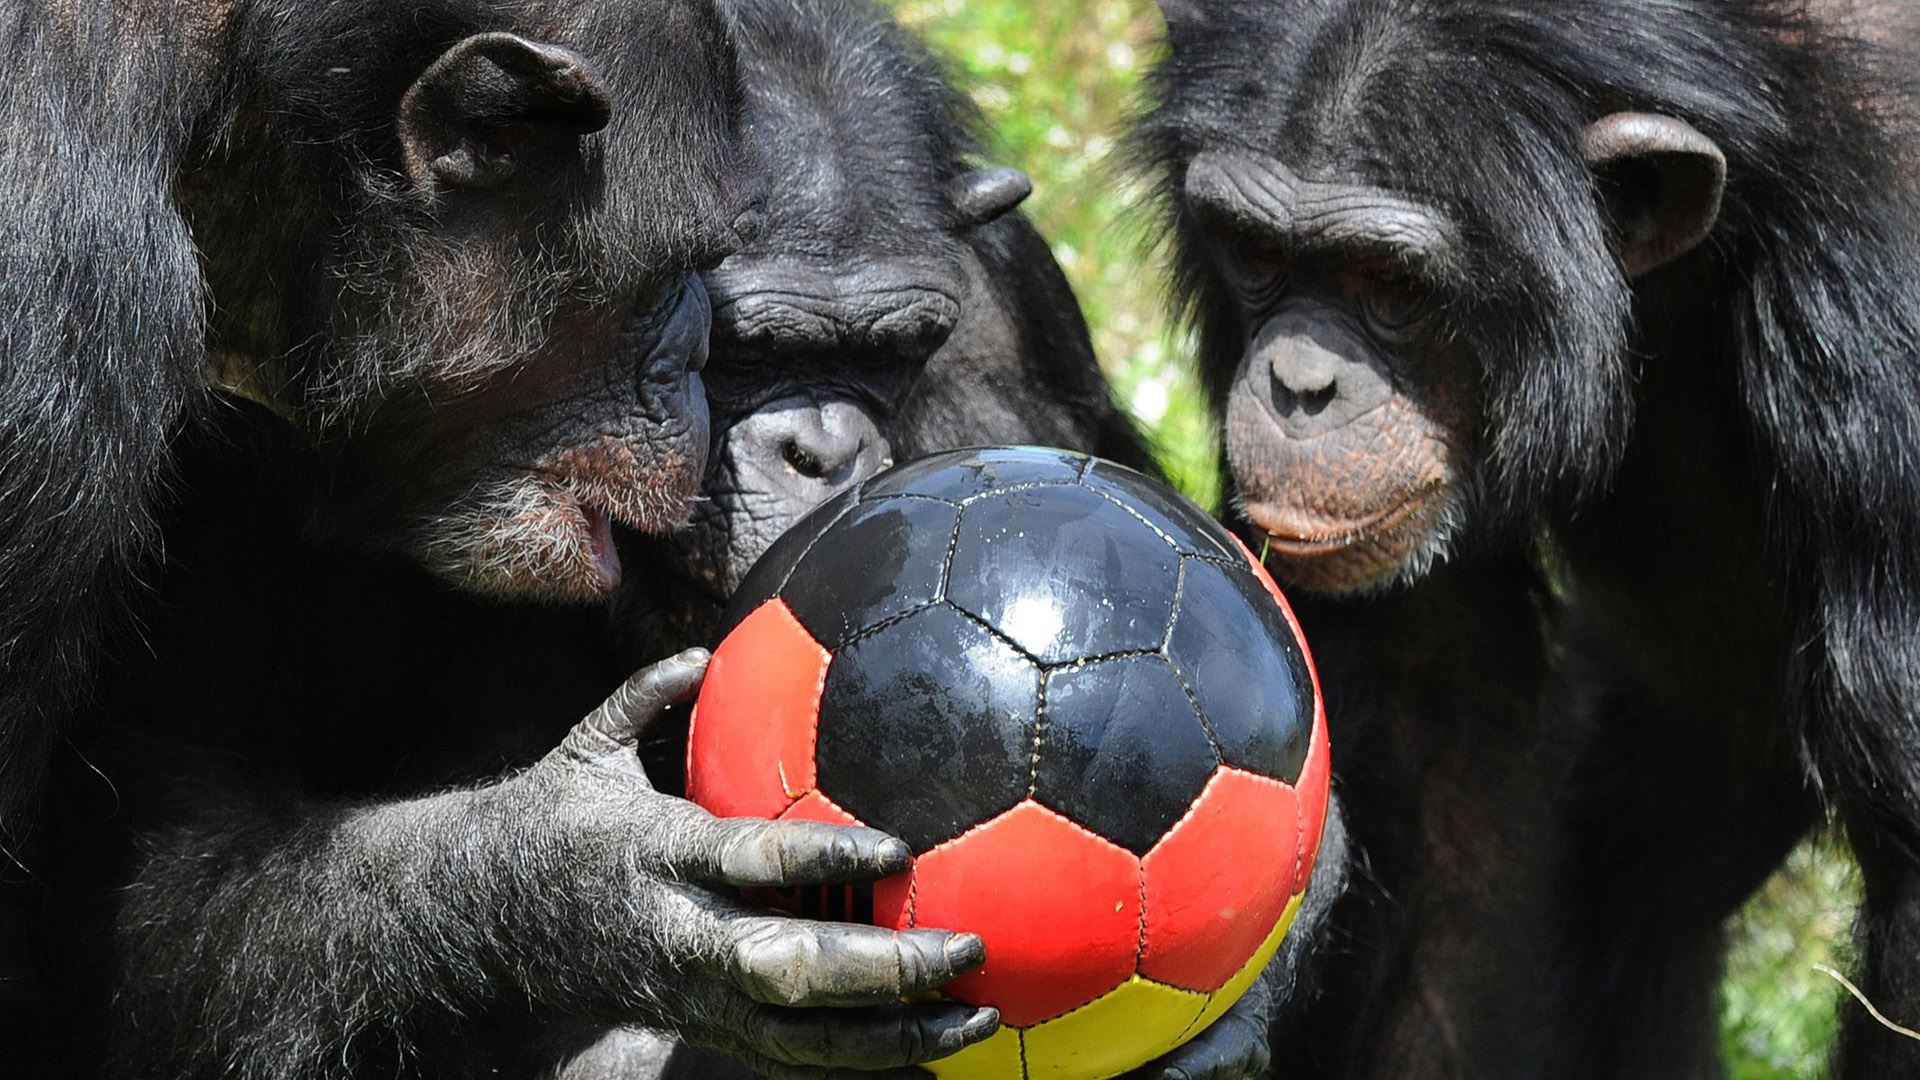 A group of chimpanzee play with a ball